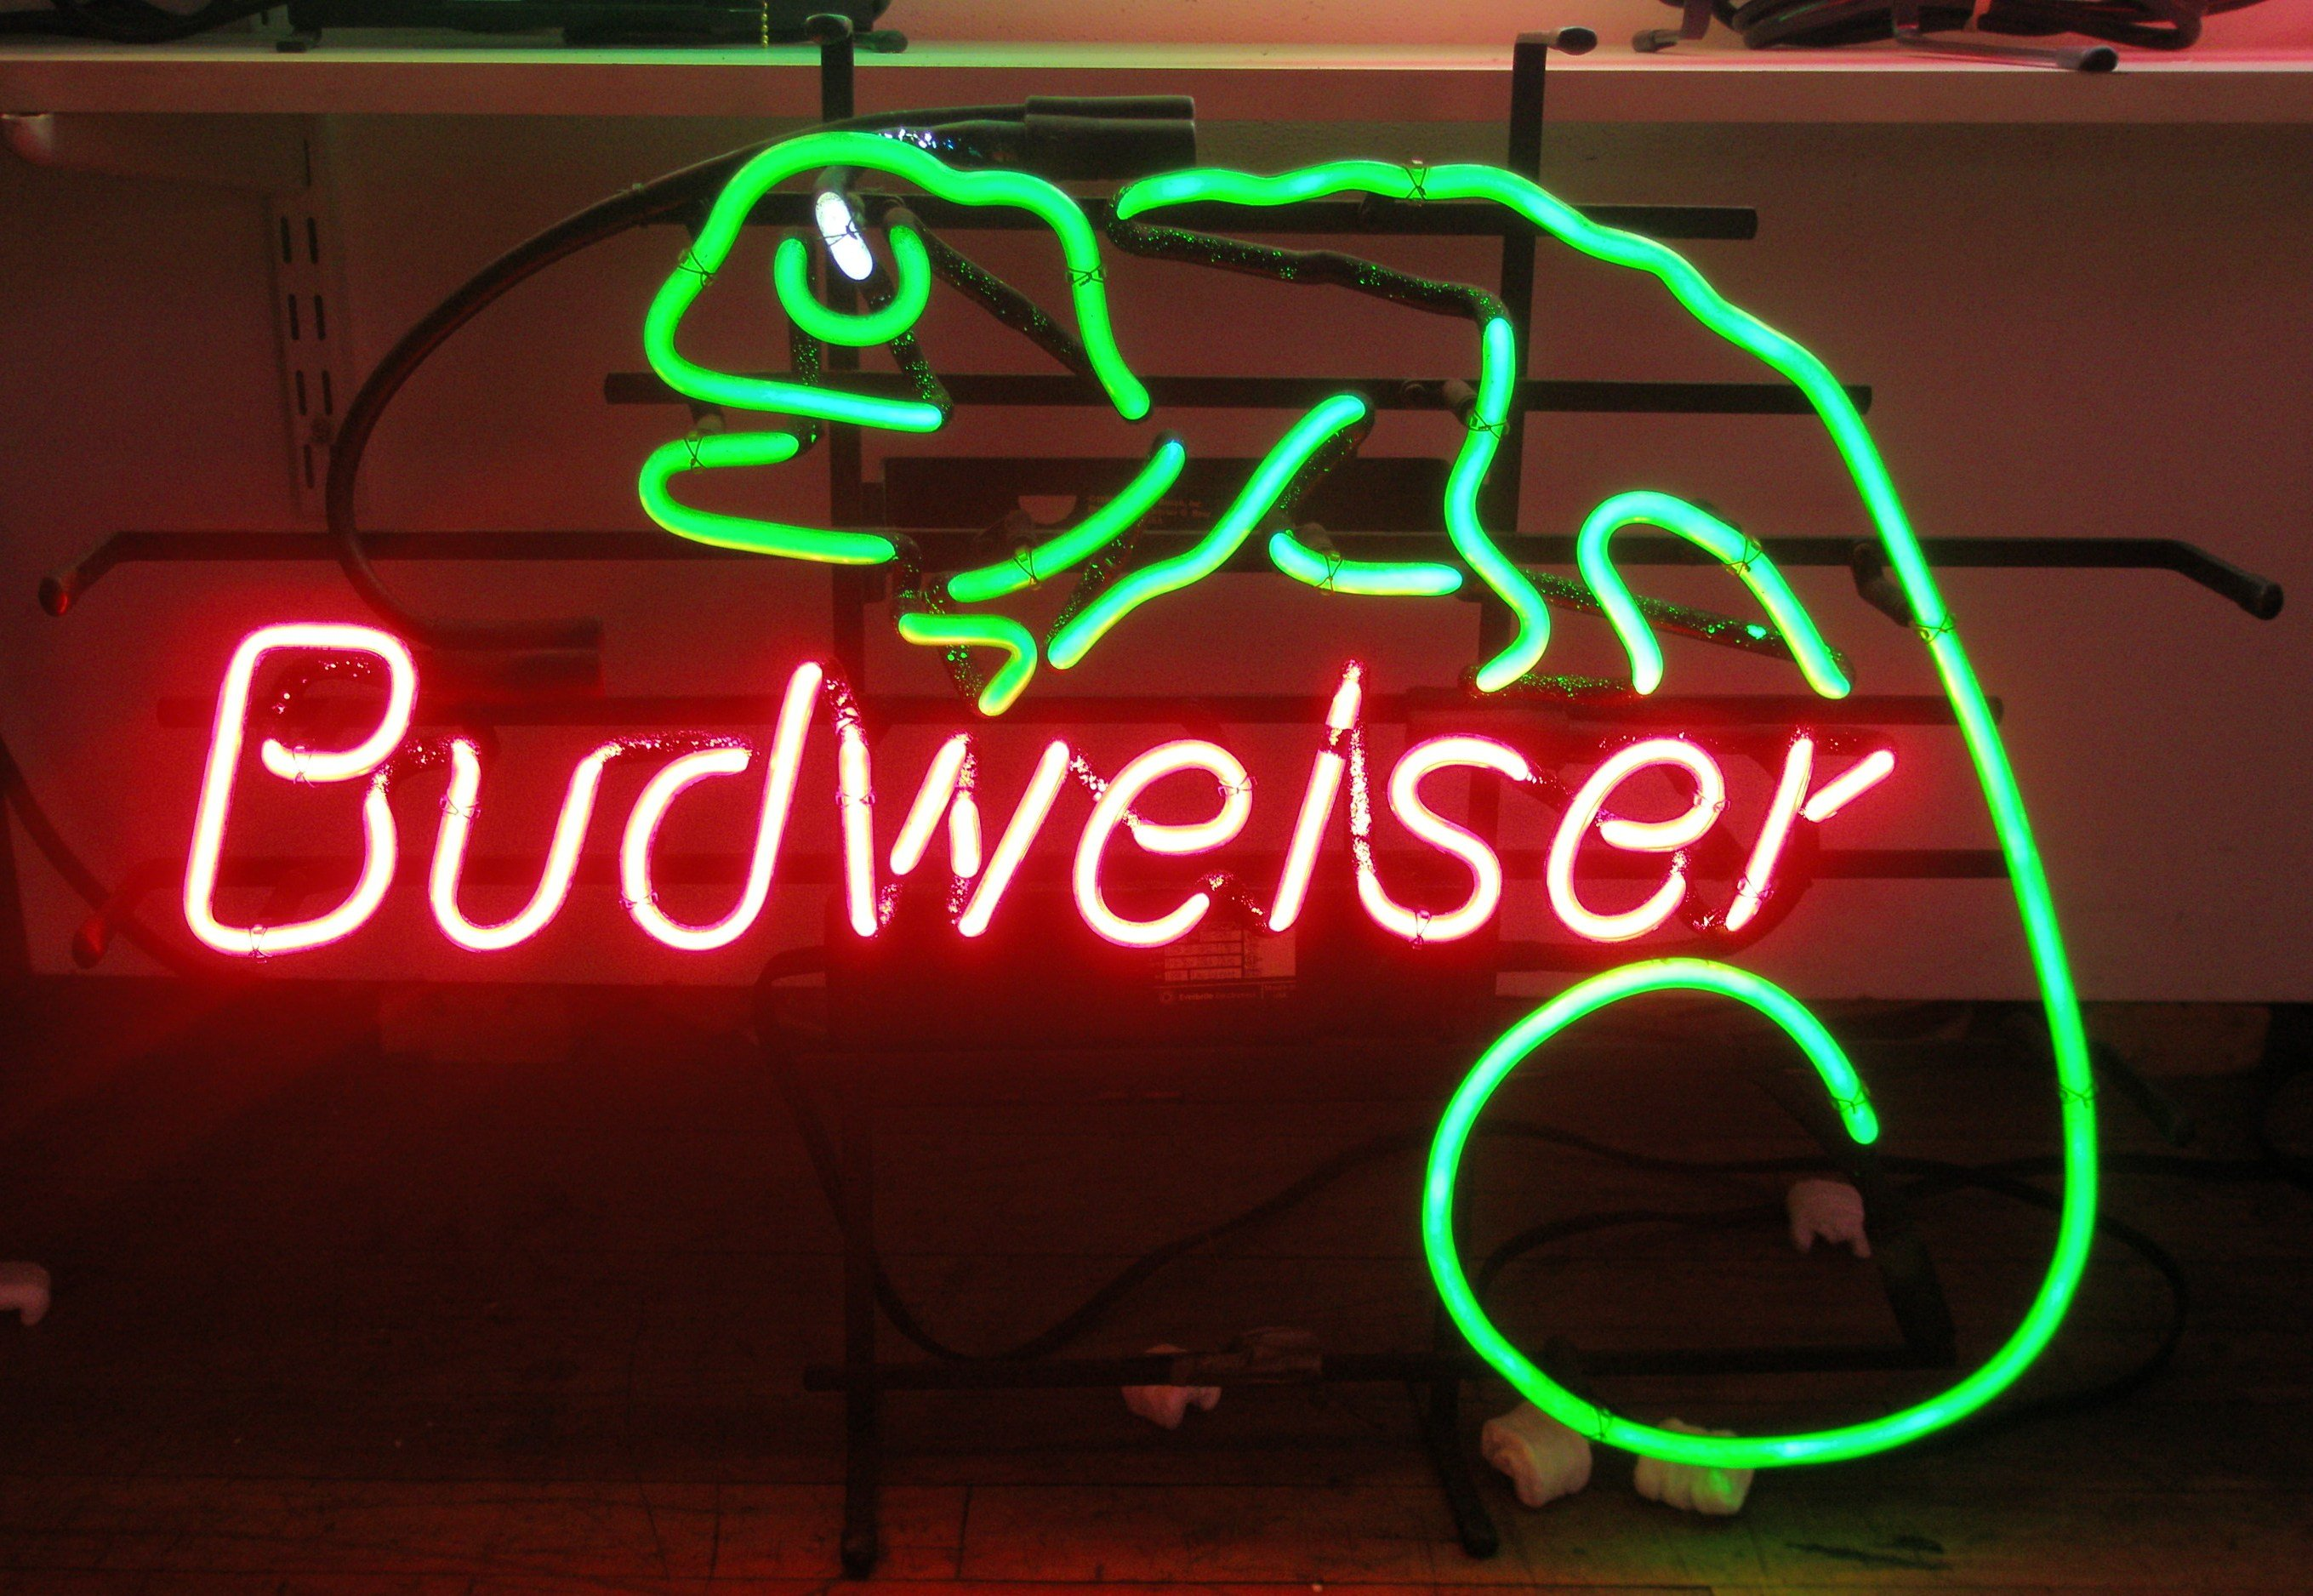 Beer Alcohol Drink Poster Neon Sign Wallpaper 2719x1876